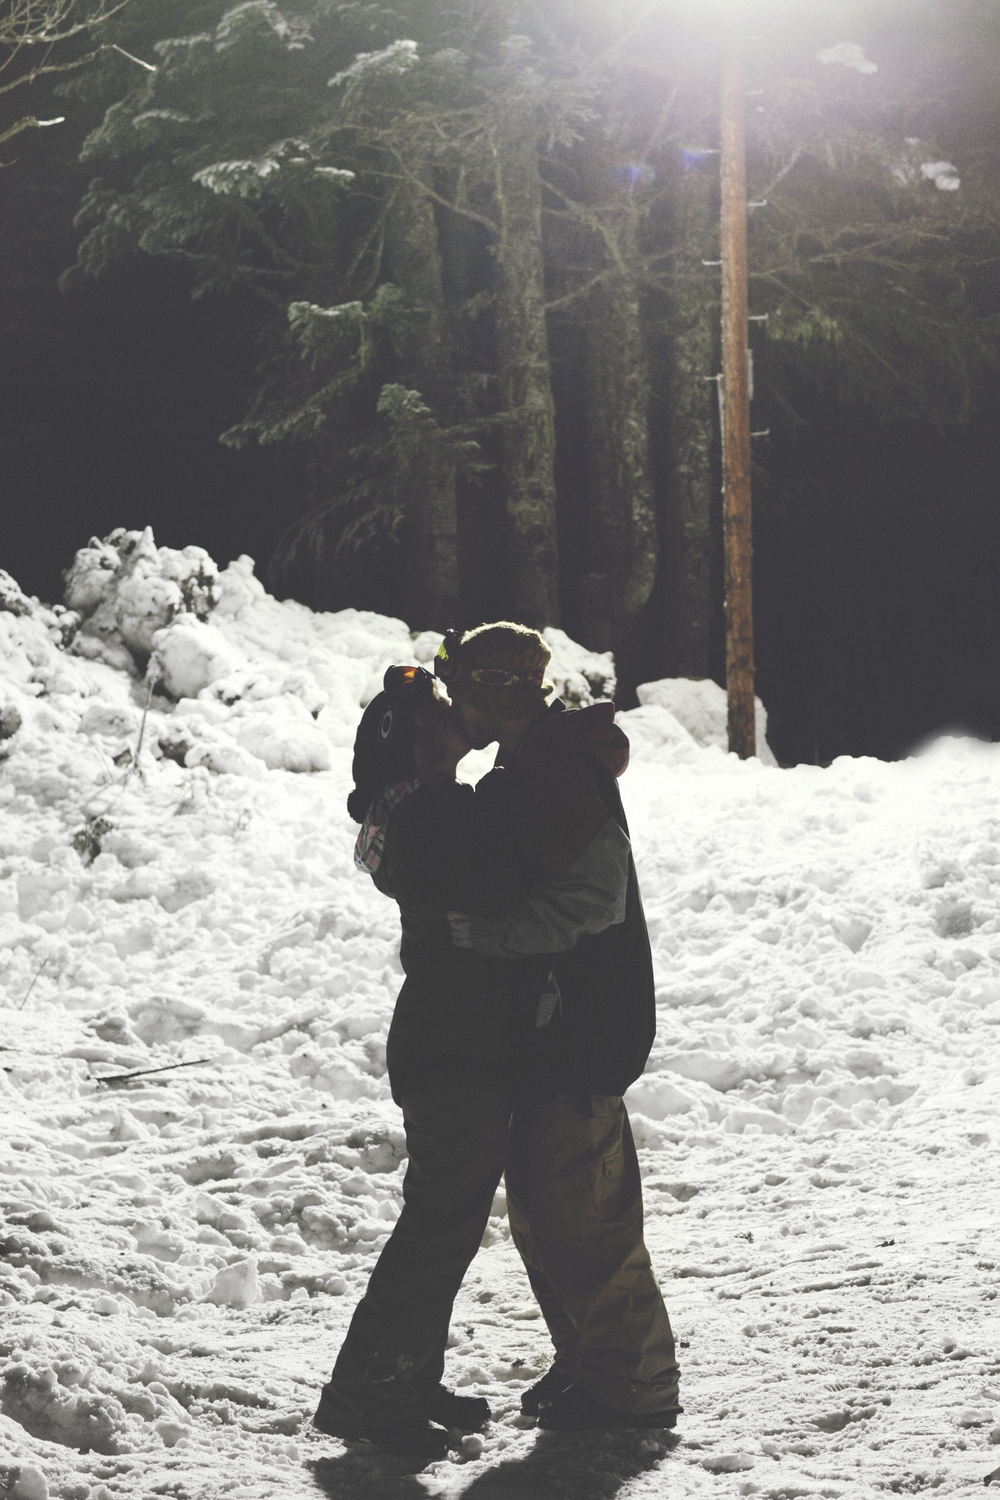 002+outlive+creative+oregon+best+engagment+shoot+location+ski+bowl+skyler+katie.jpg